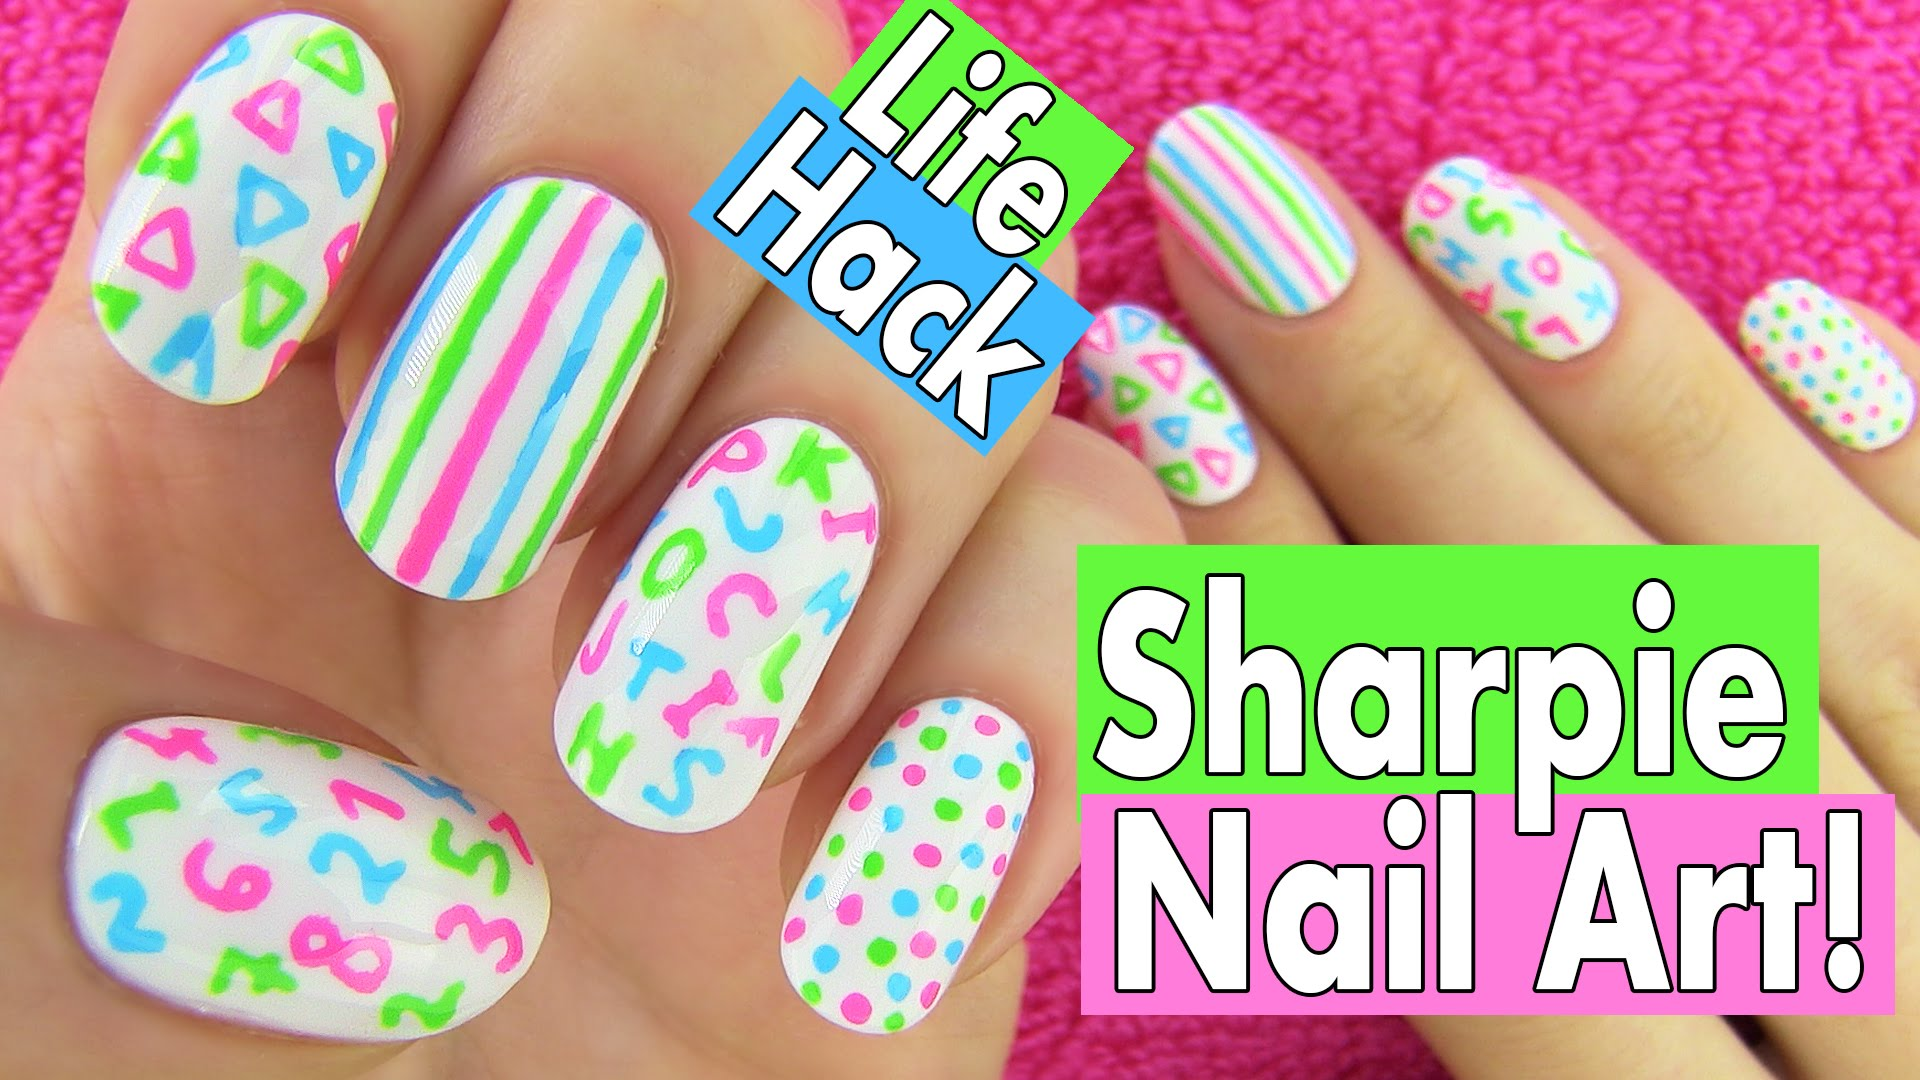 Sharpie Nails Nail Art Life Hacks 5 Easy Designs For Back To School